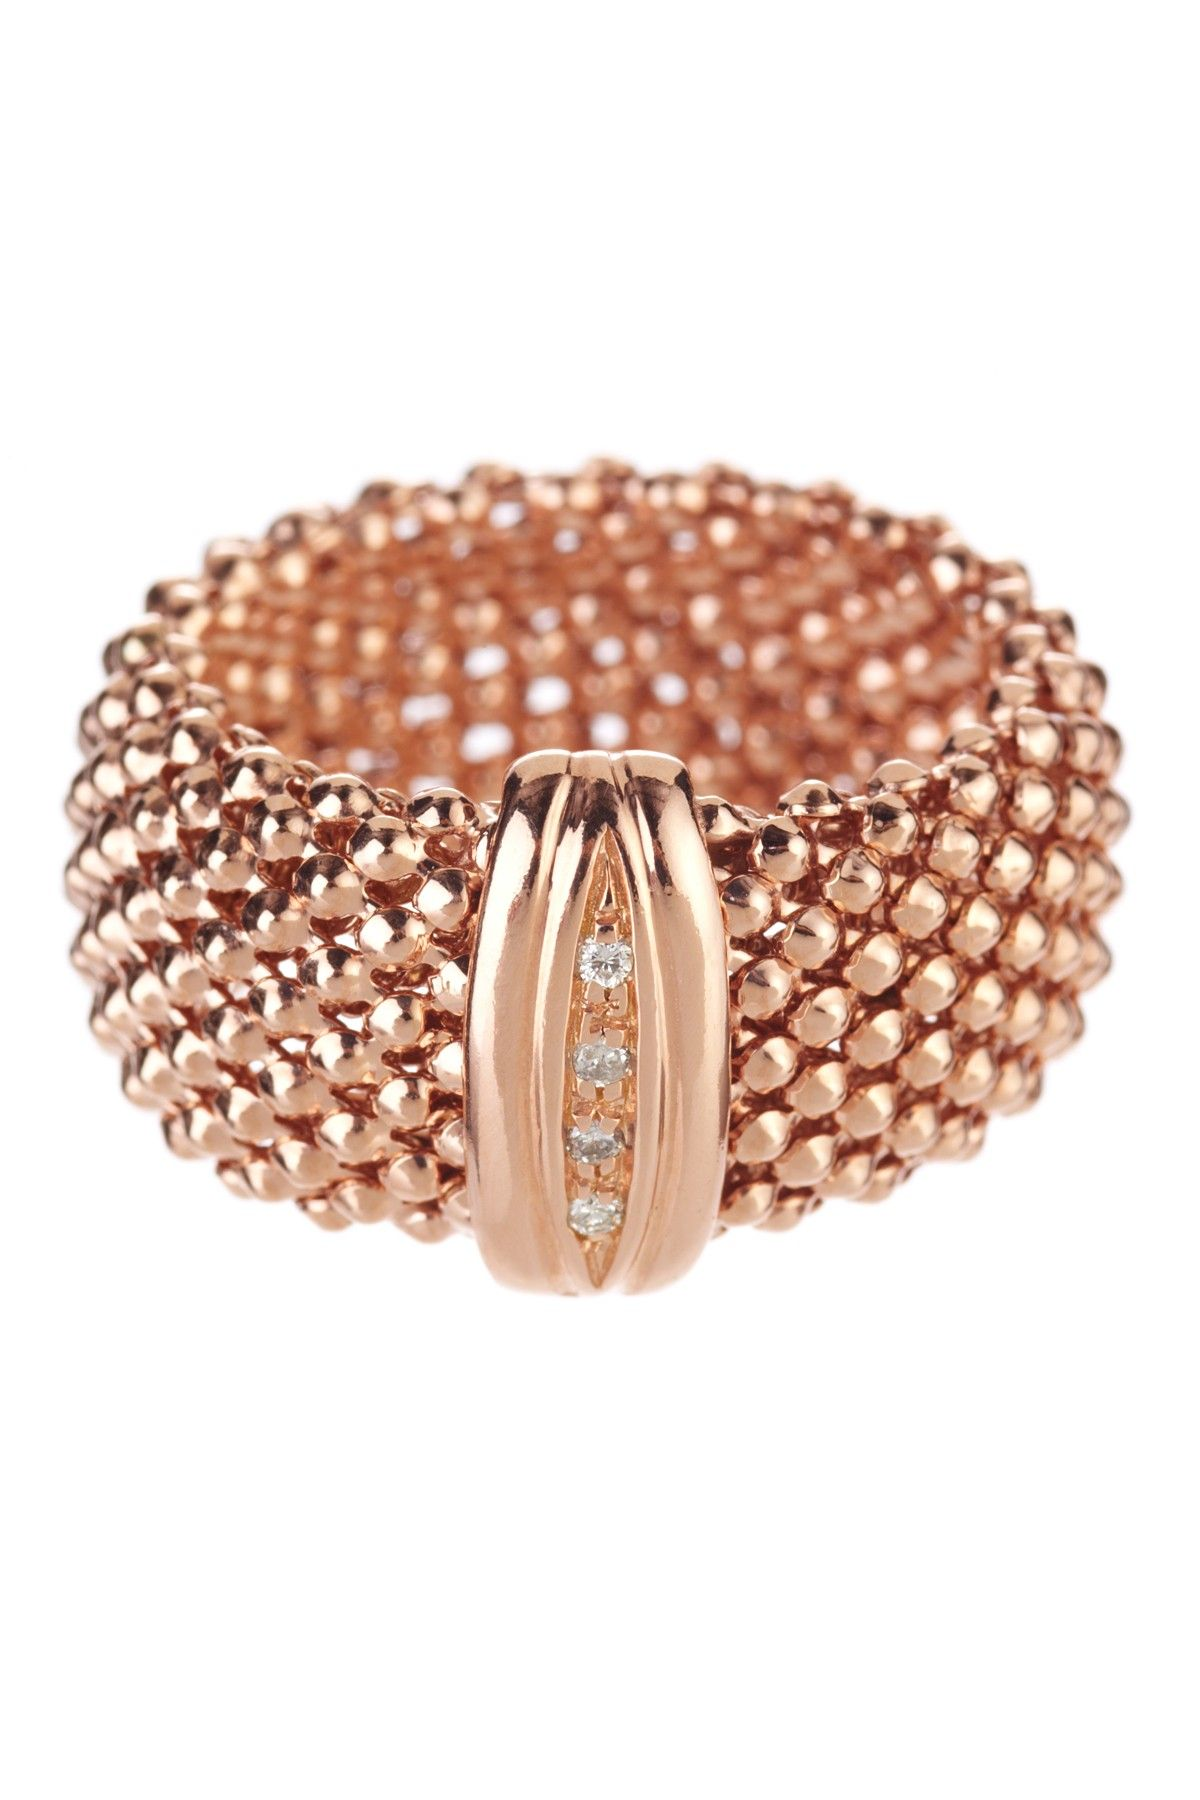 rose gold diamonds ring needful things Pinterest Rose gold